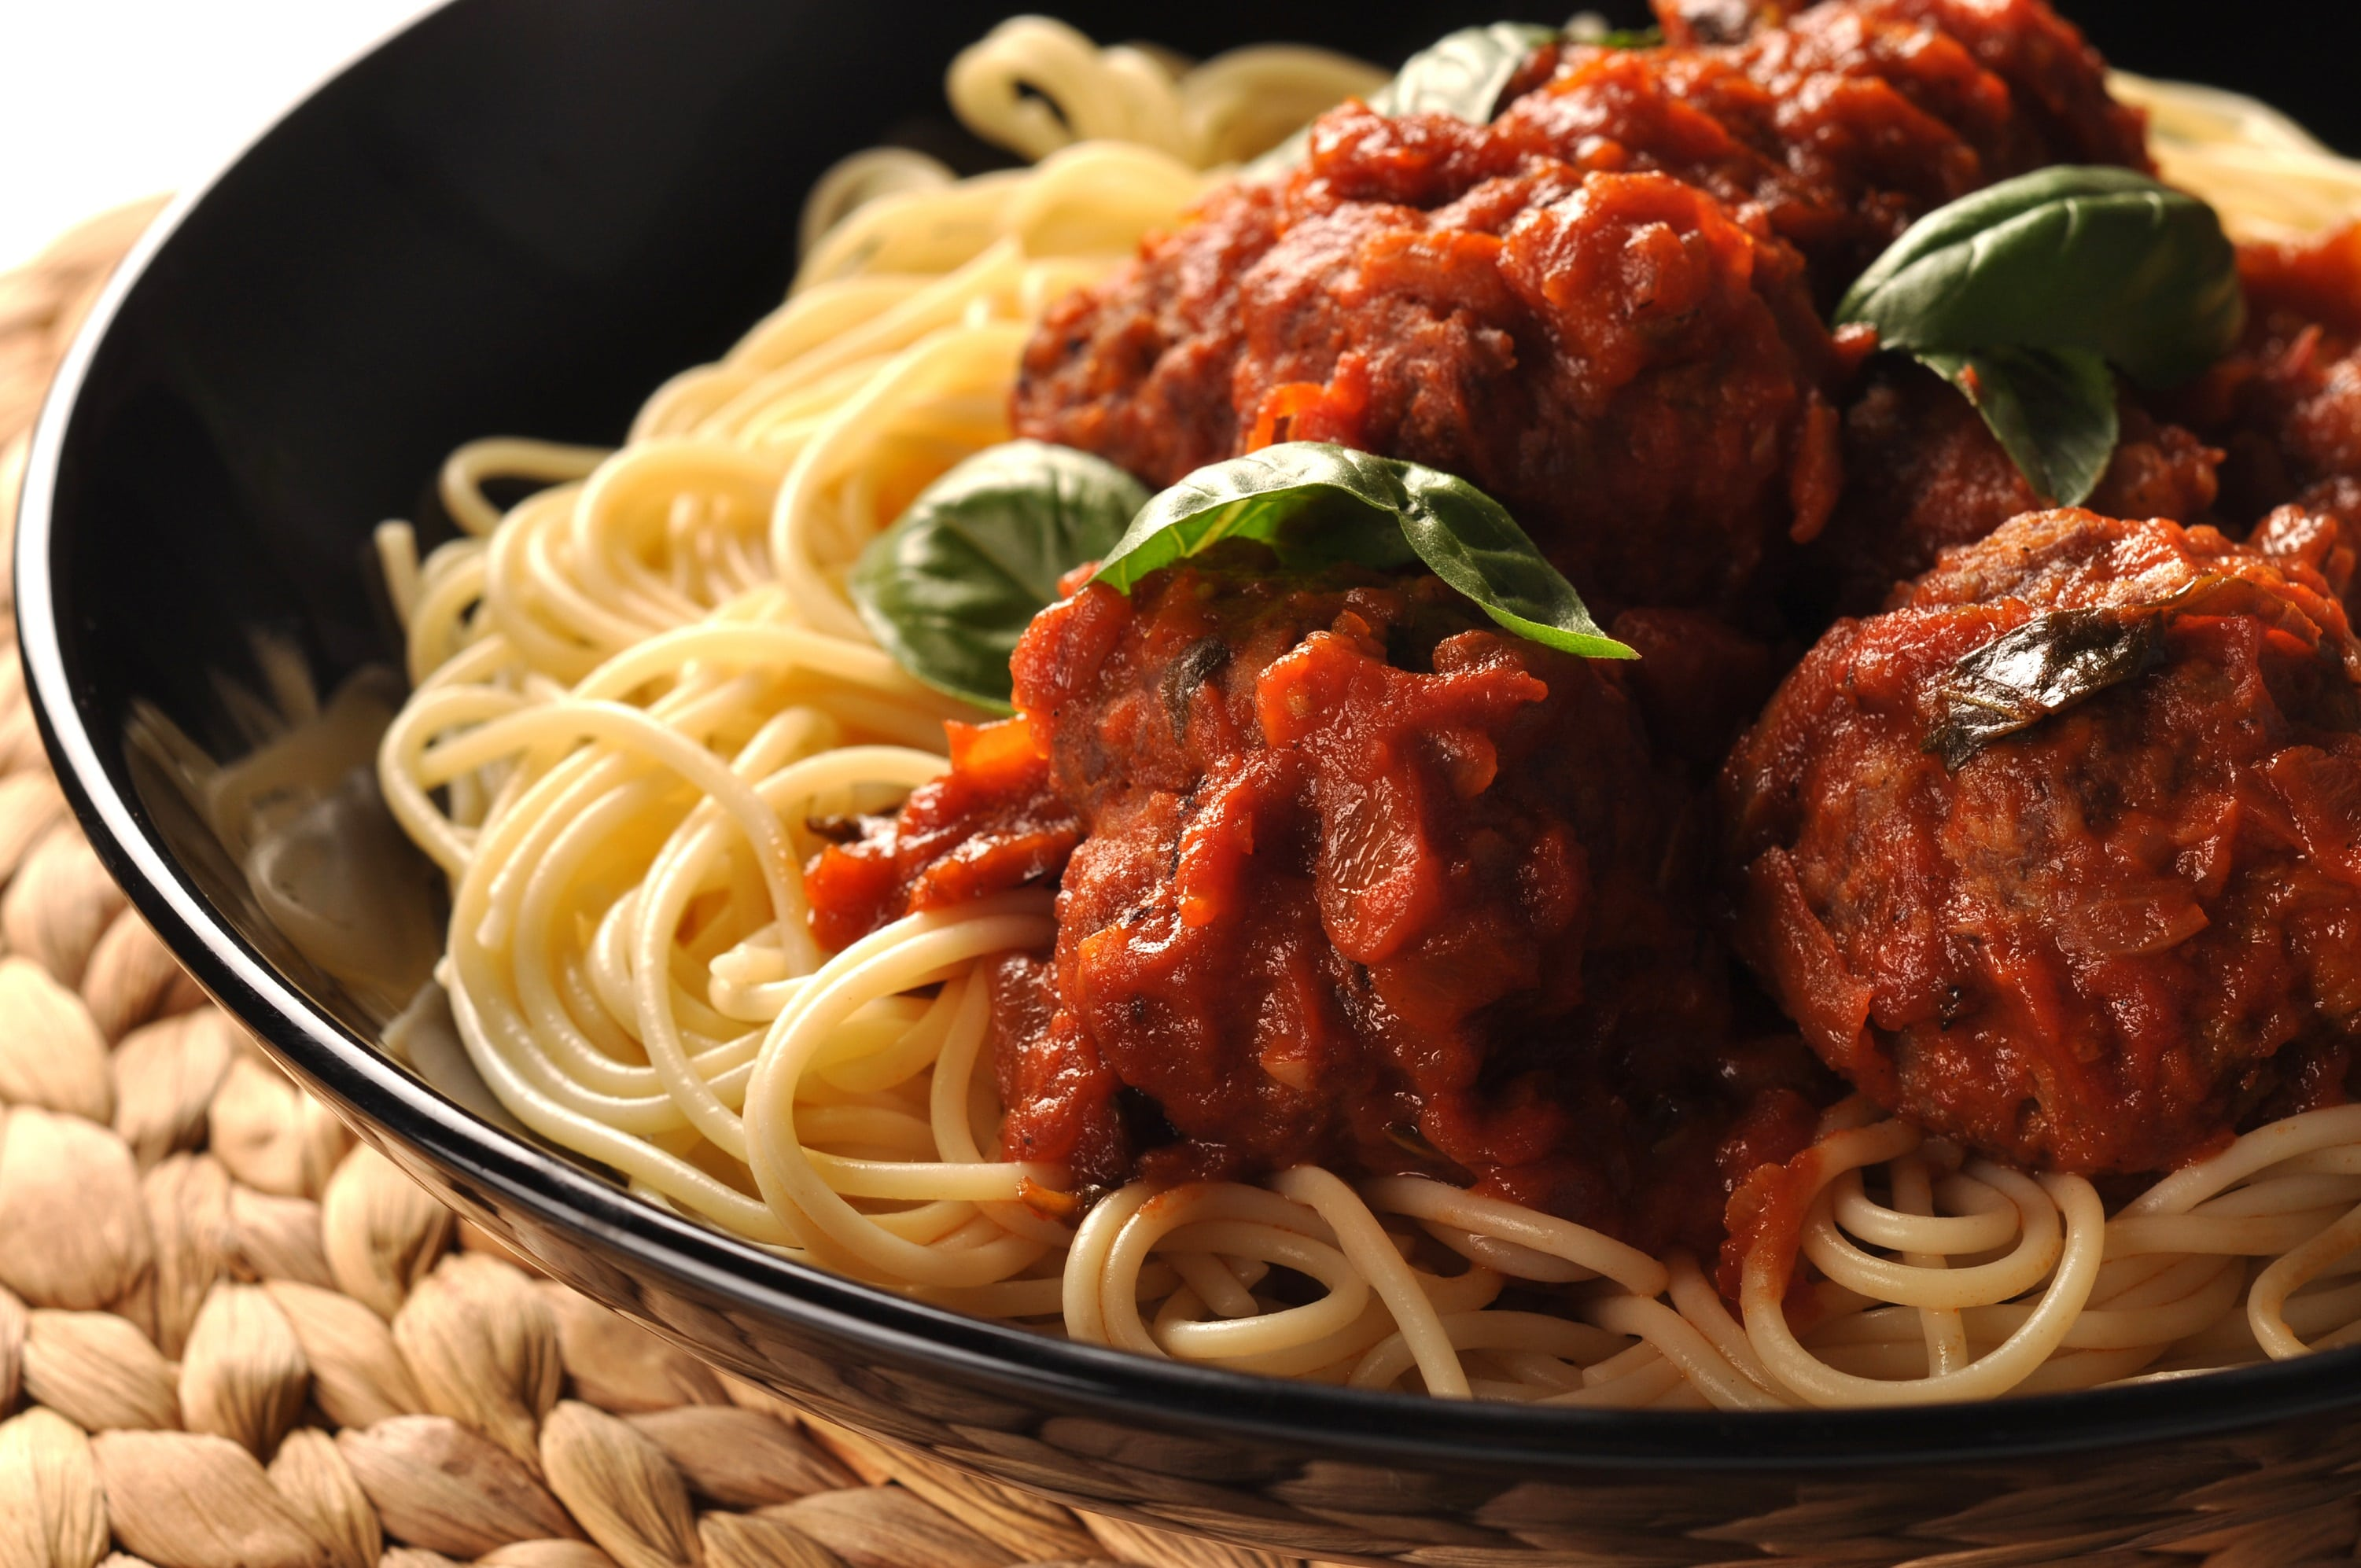 spaghetti and meatballs topped with tomato sauce